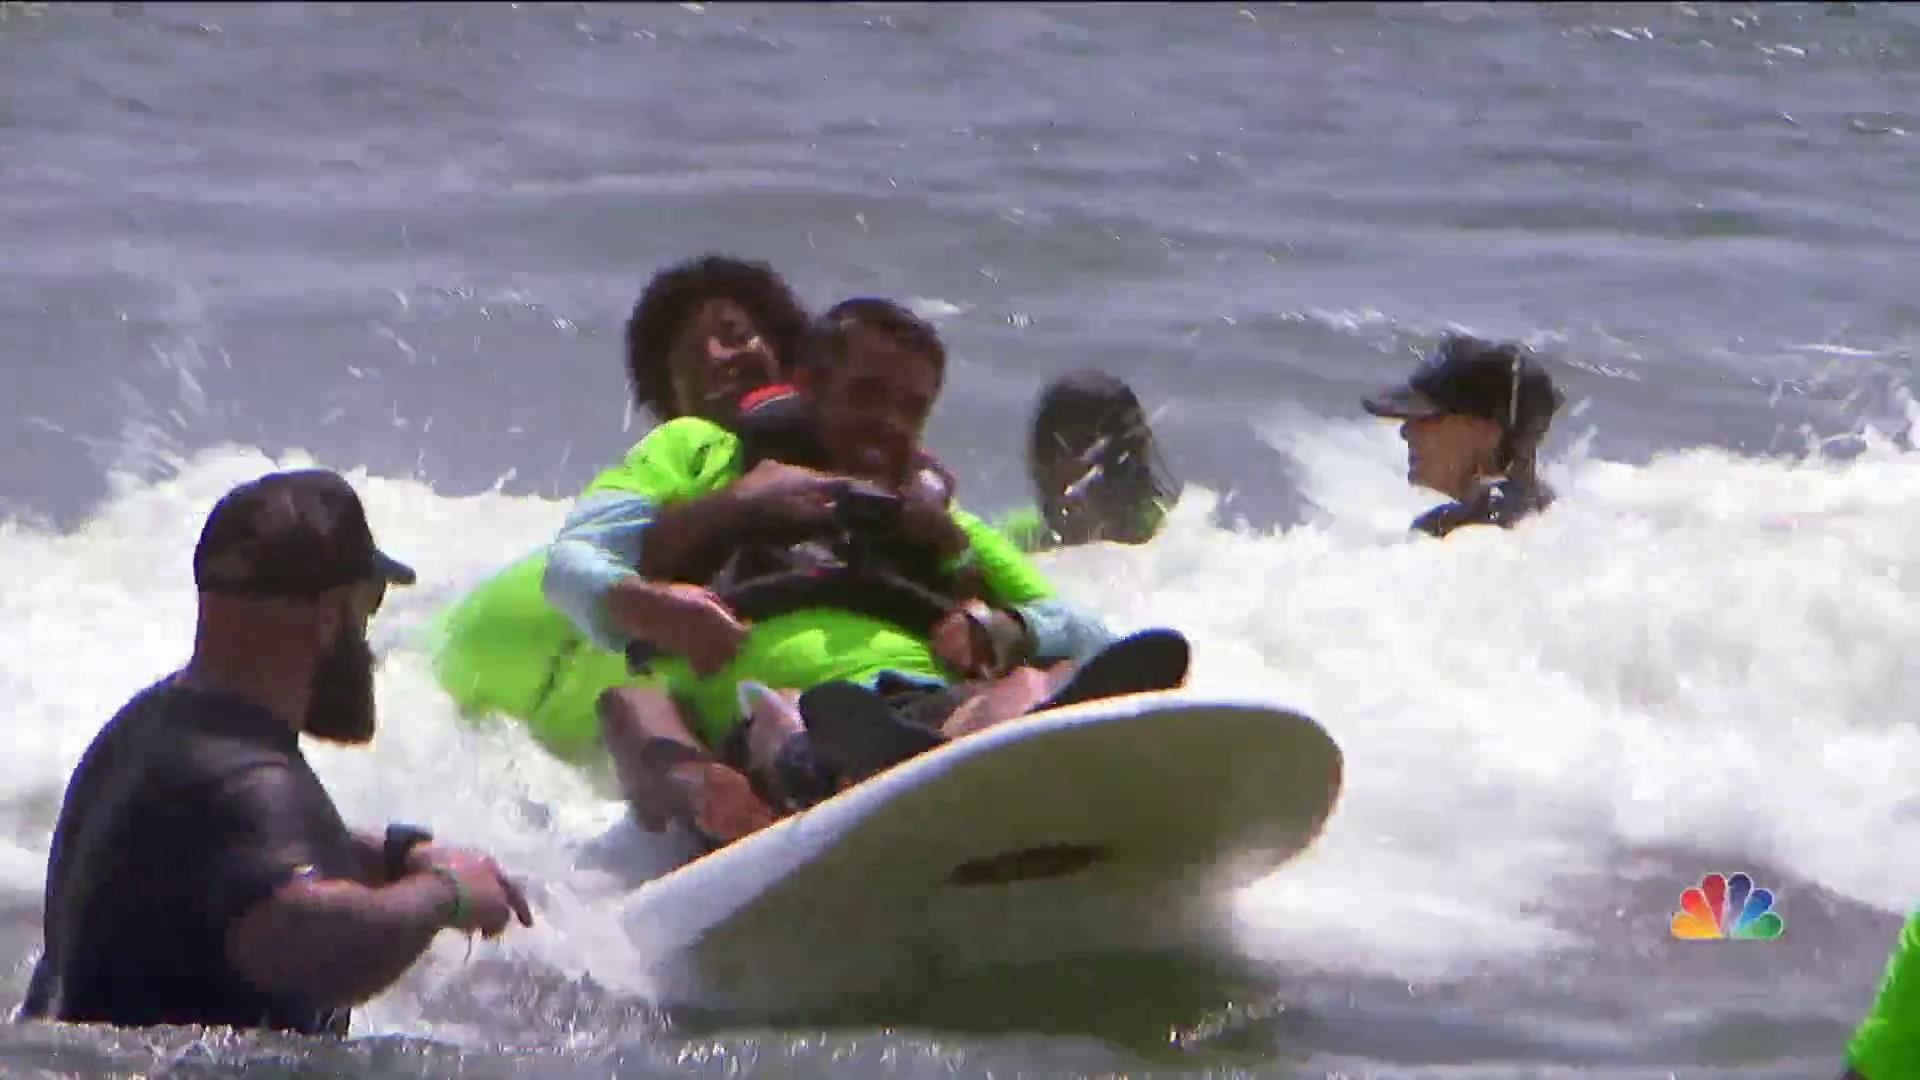 Surfing, skating and freedom: Non-profit helps athletes with disabilities find new thrills